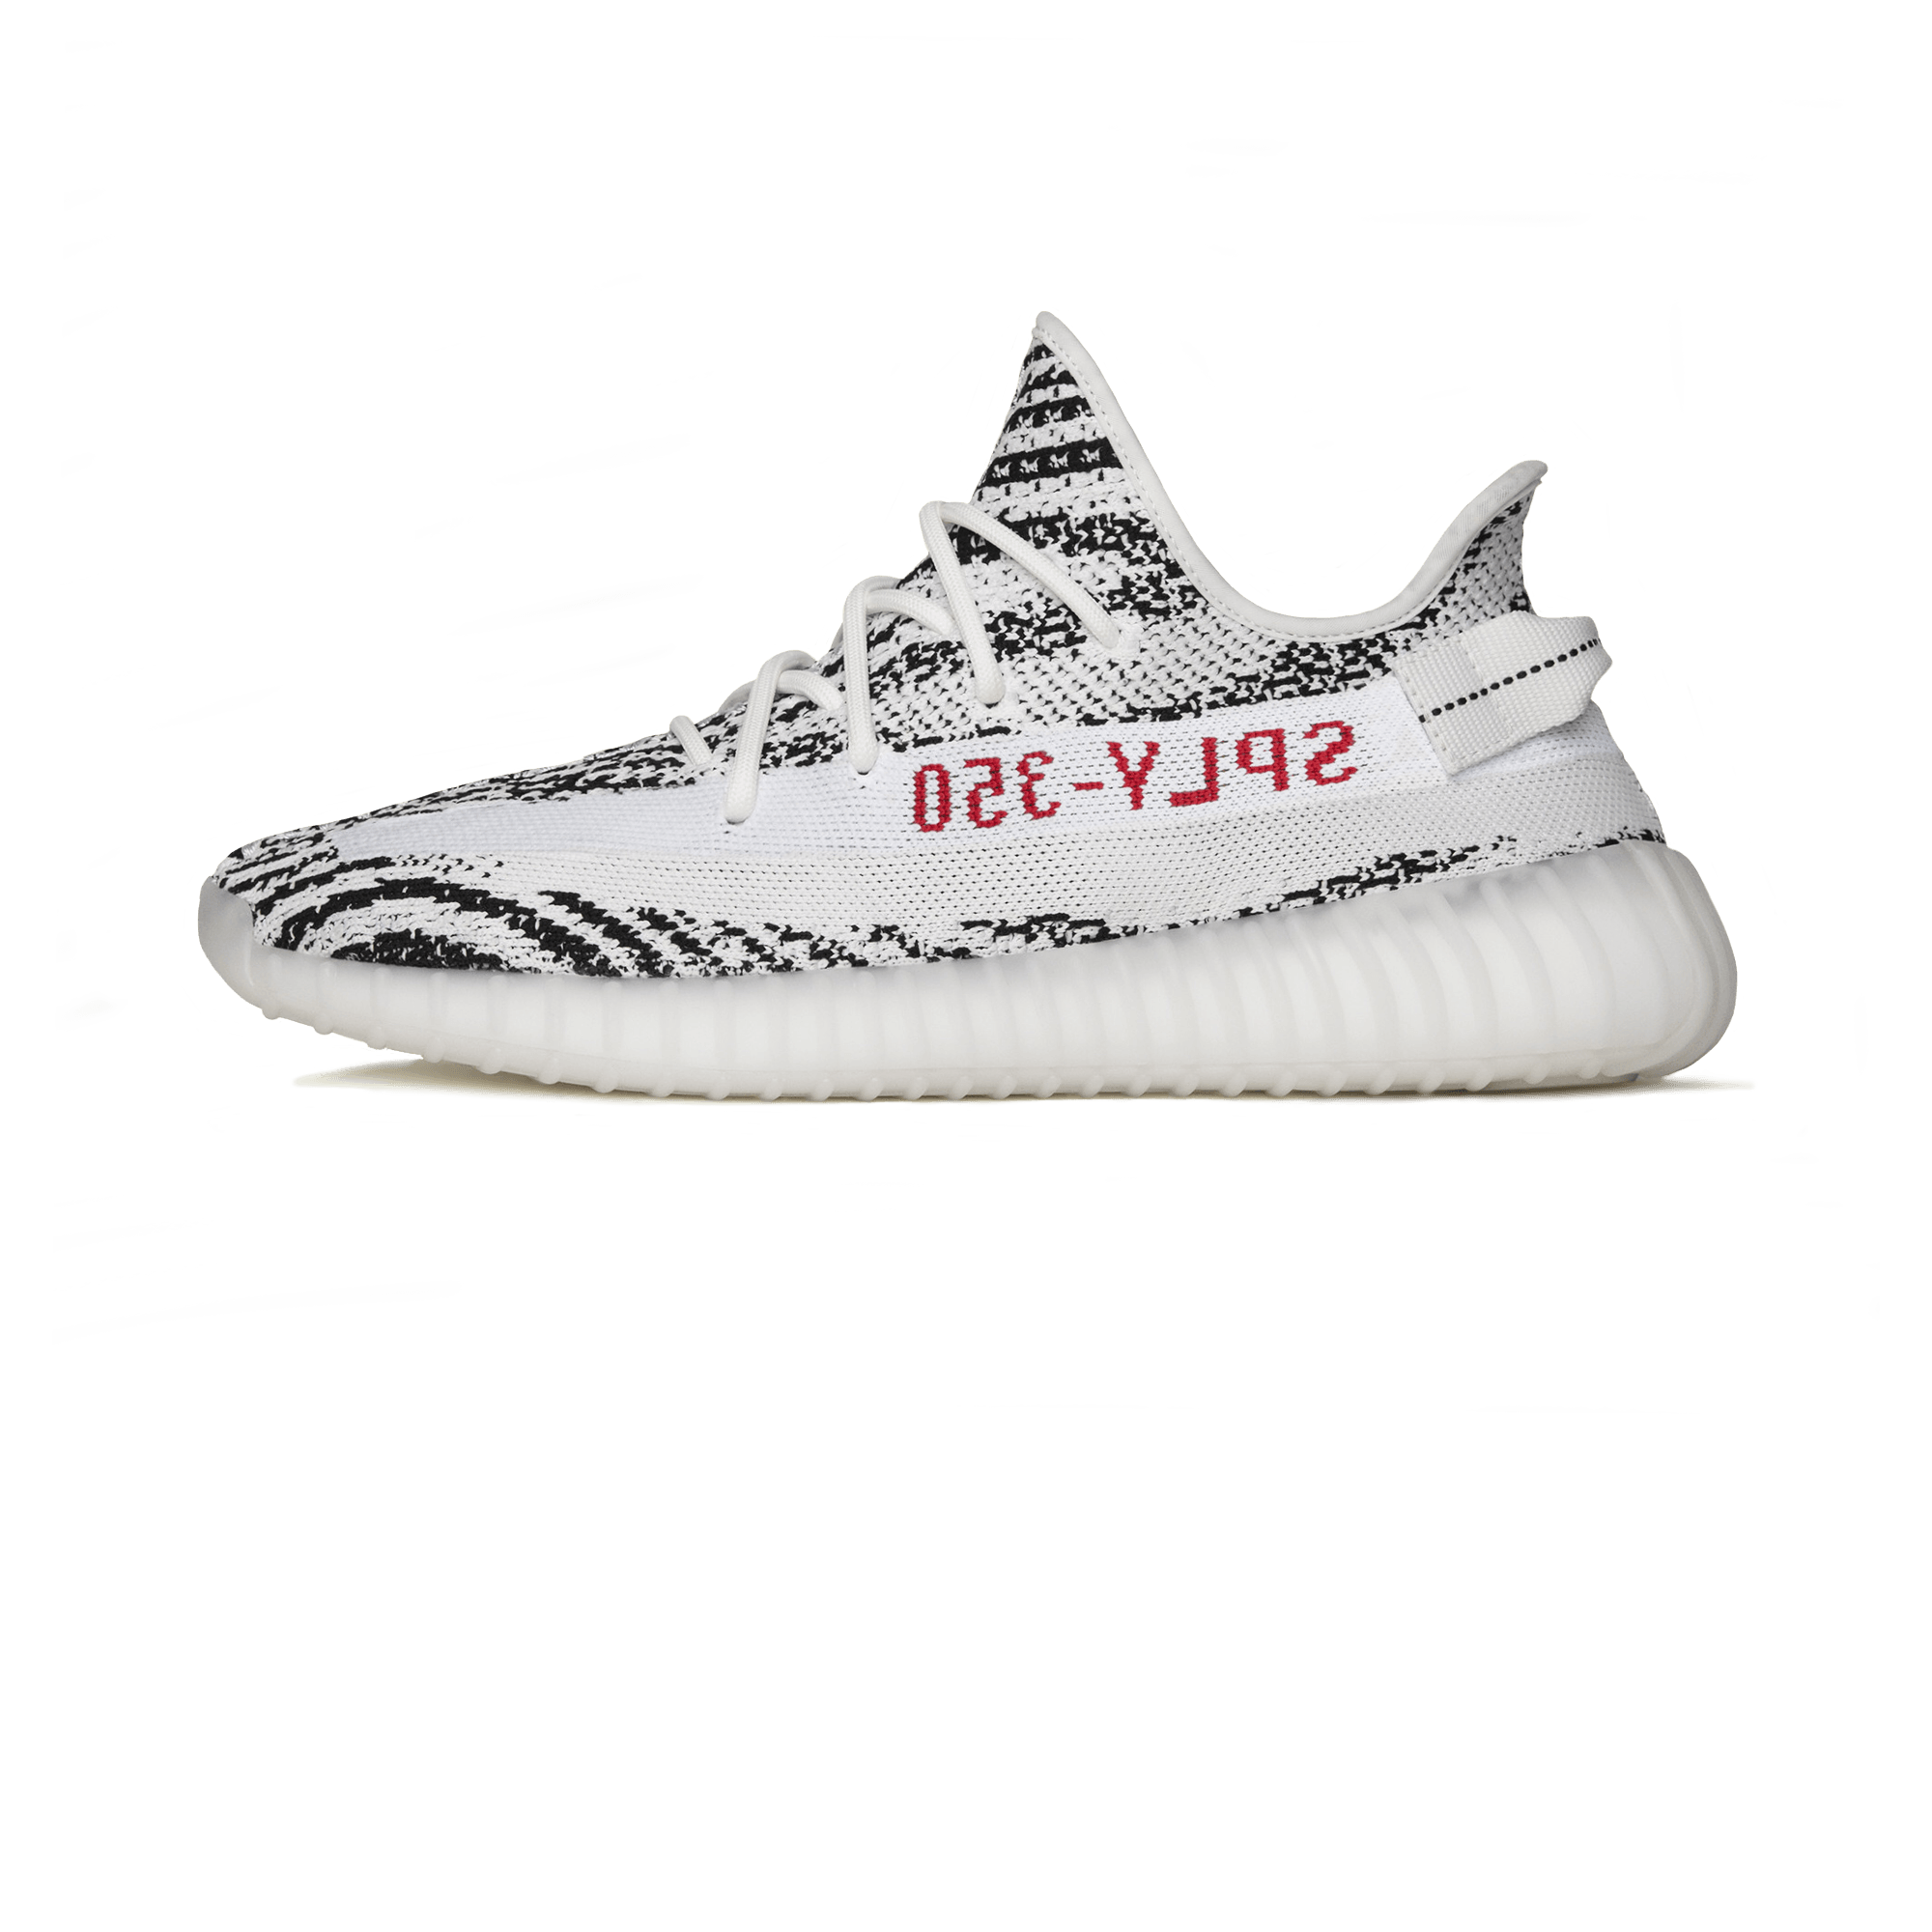 69% Off Cheap Yeezy boost 350 v2